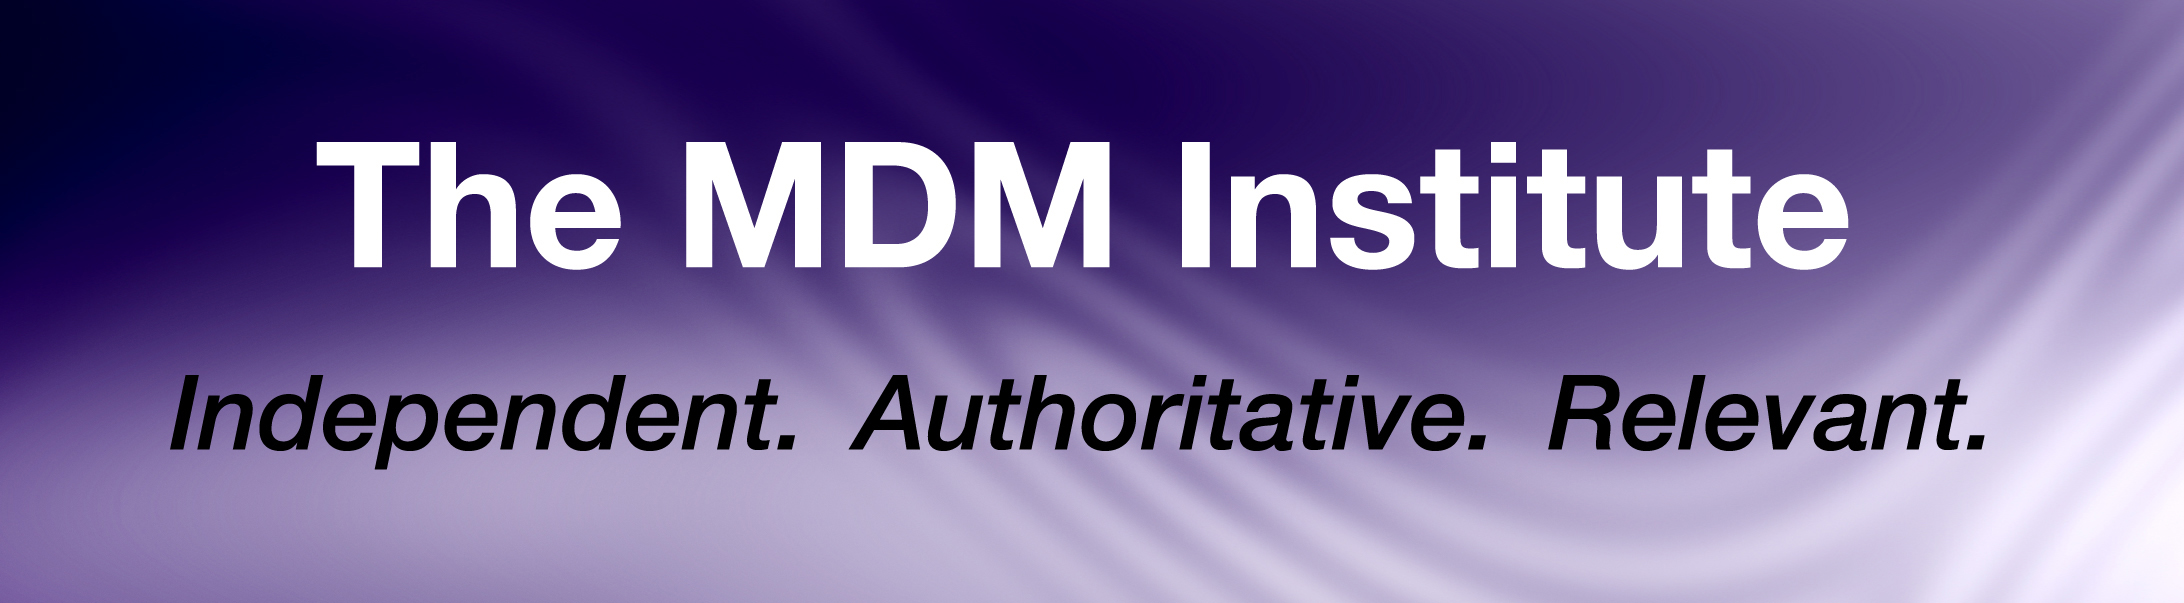 The MDM Institute - Independent. Authoritative. Relevant.